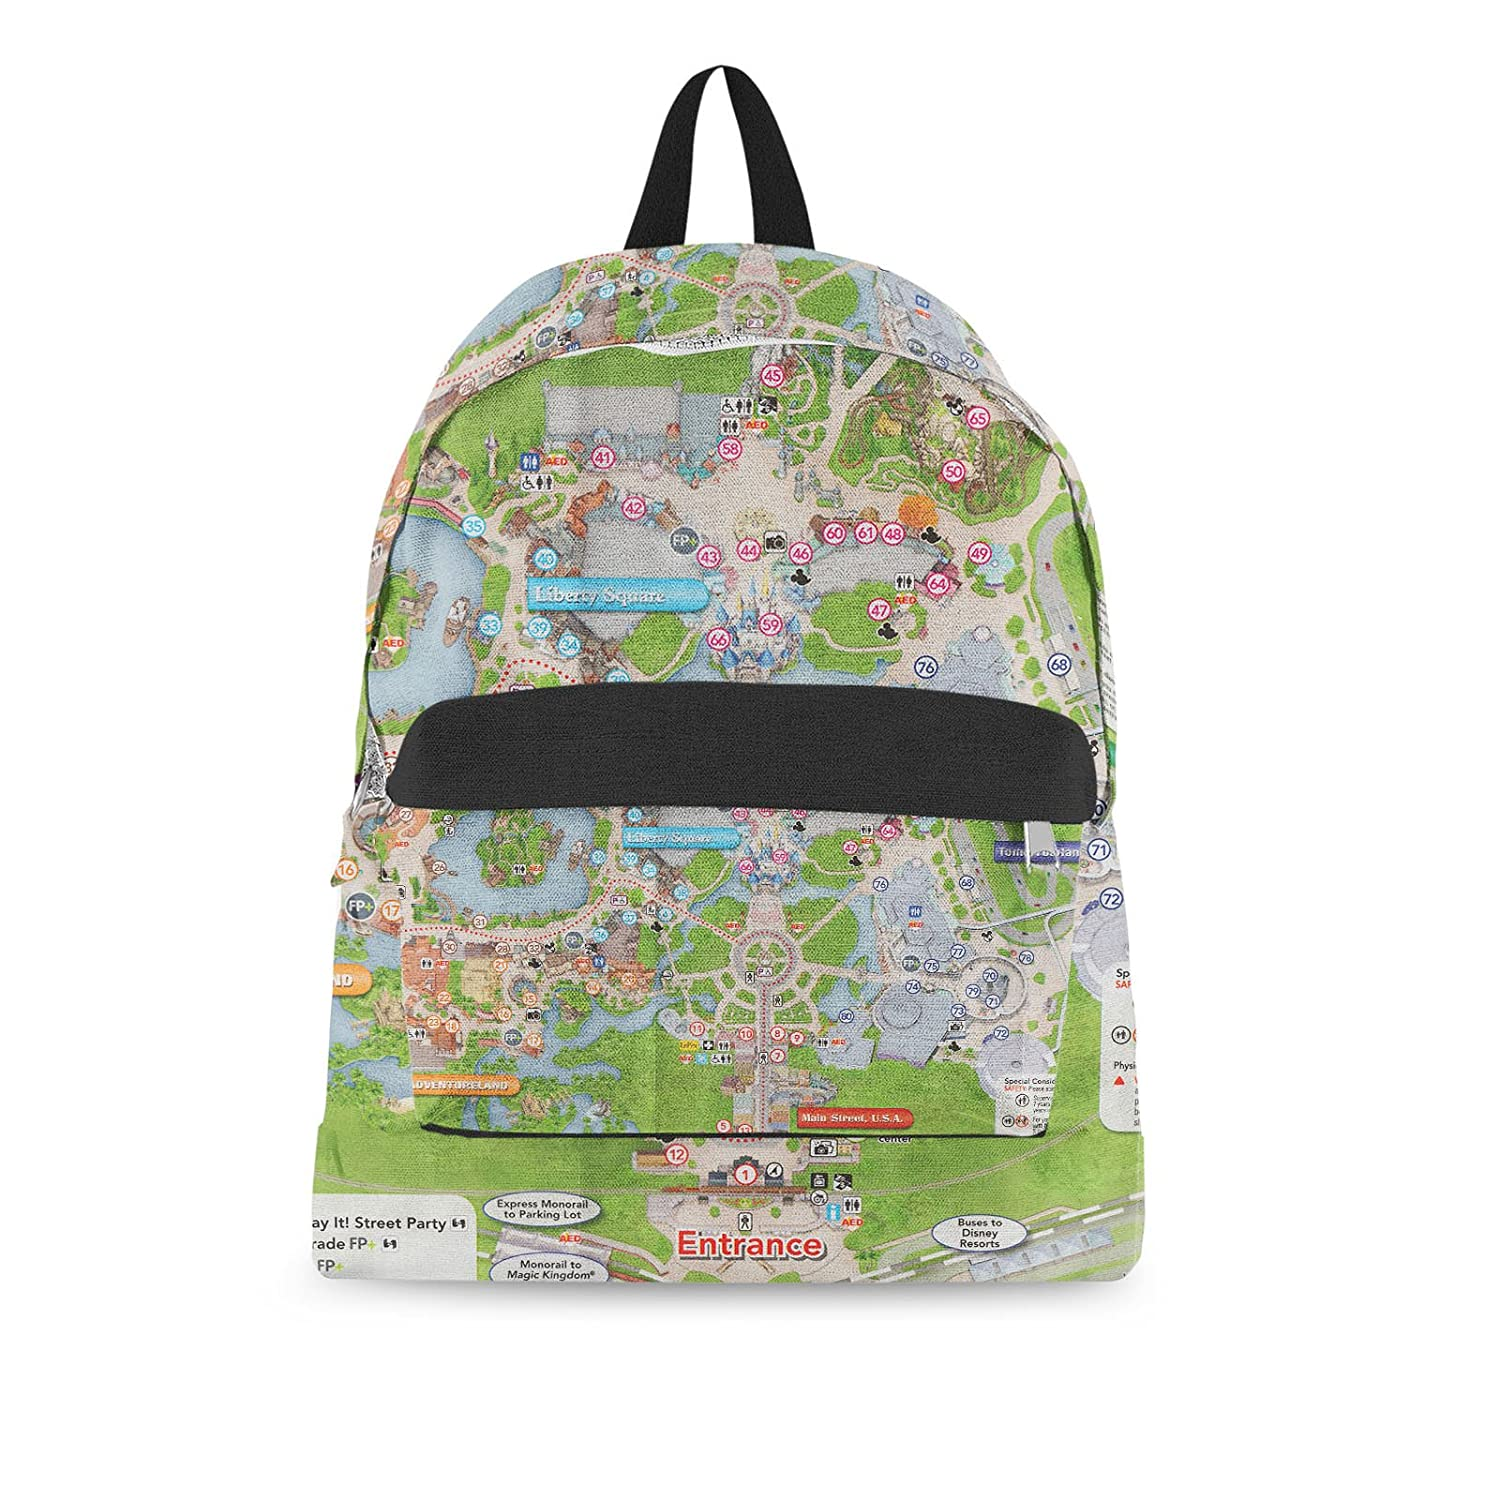 graphic about Magic Kingdom Printable Map named  Magic Kingdom Map Backpack All-Earlier mentioned-Print